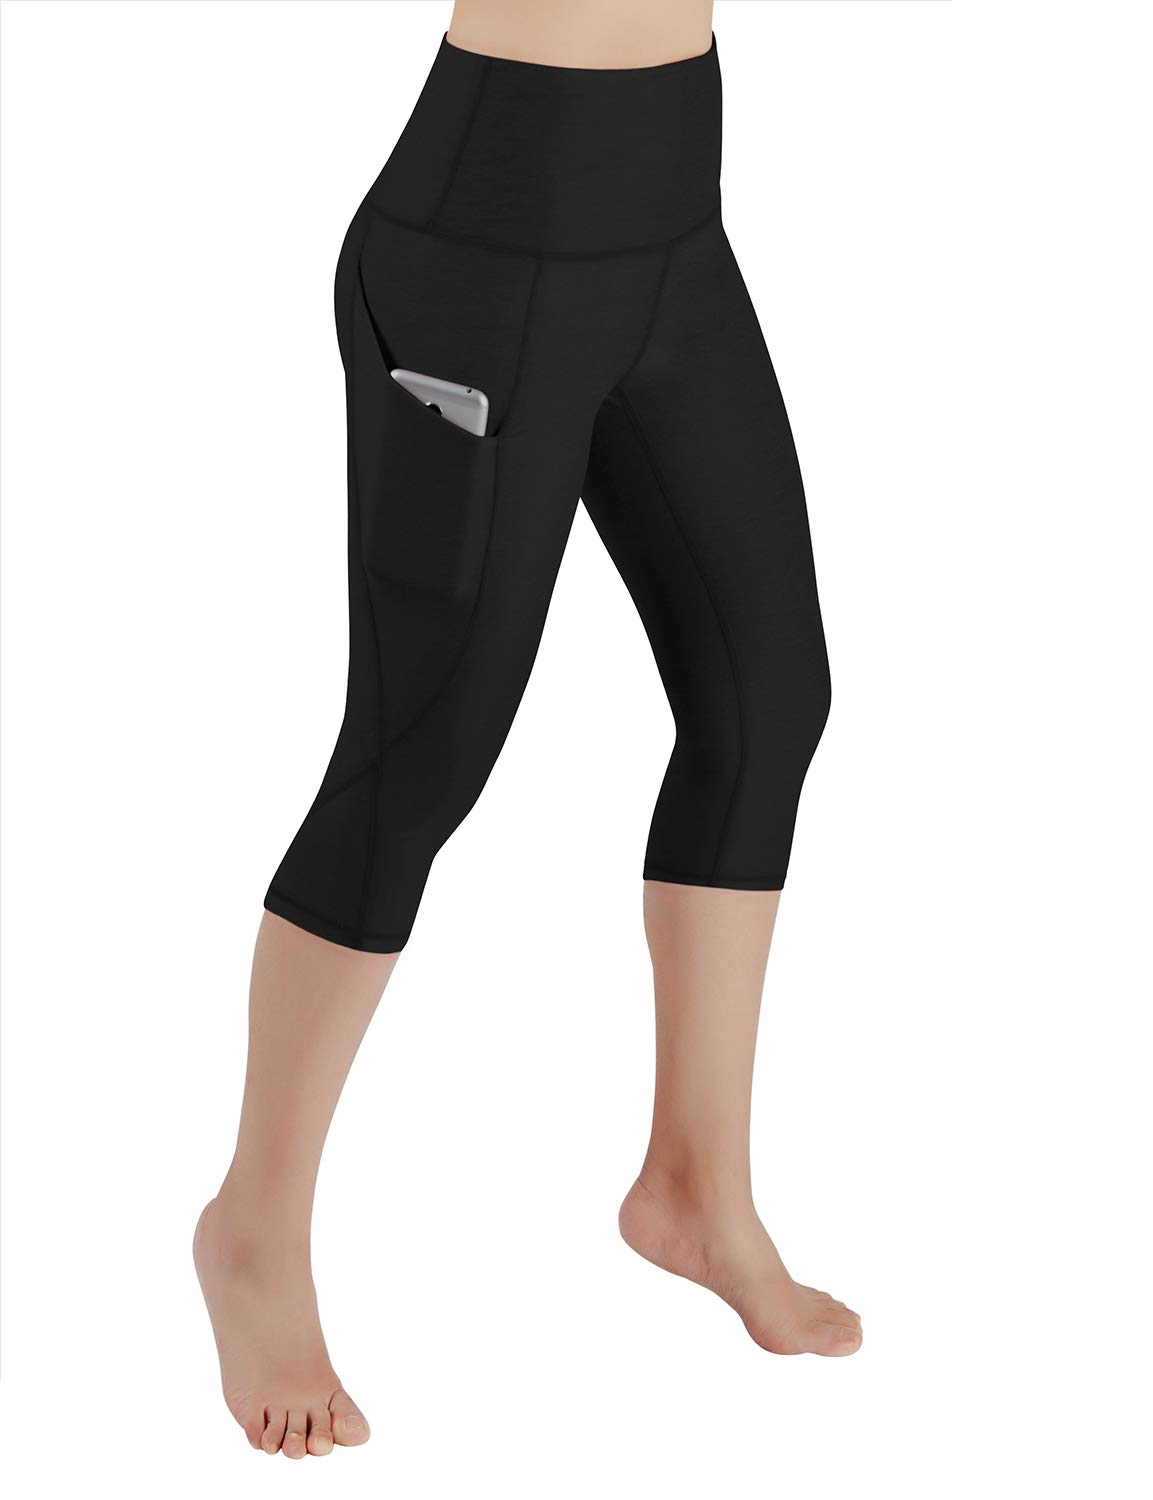 ODODOS High Waist Out Pocket Yoga Capris Pants Tummy Control Workout Running 4 Way Stretch Yoga Leggings,Black,Large by ODODOS